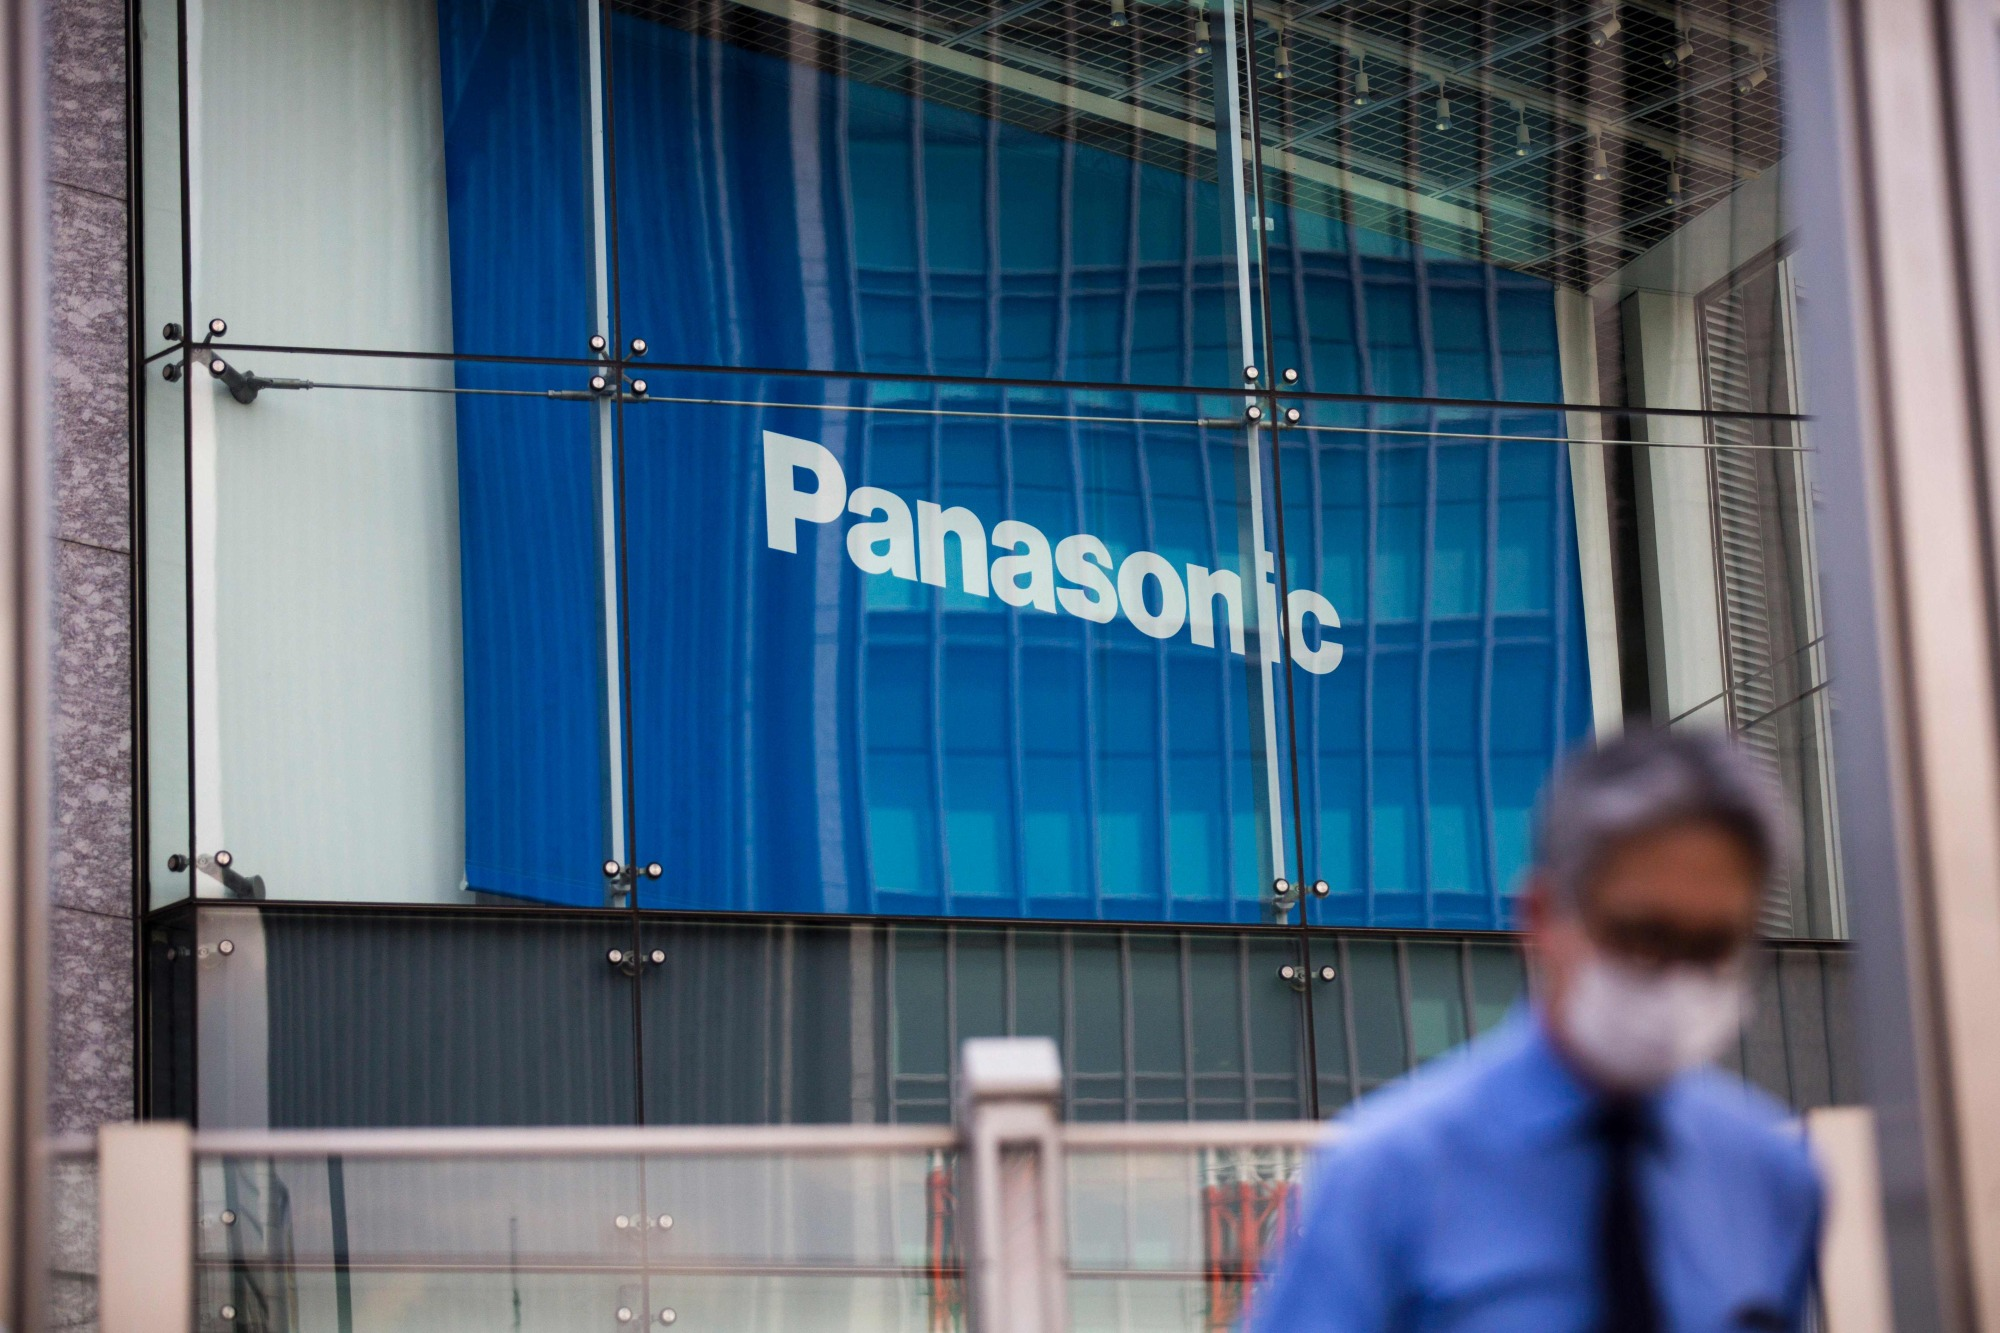 Panasonic, which announced drop in profit in fiscal 2016, is looking to automotive parts like electric car batteries to be a driver of growth. | AFP-JIJI